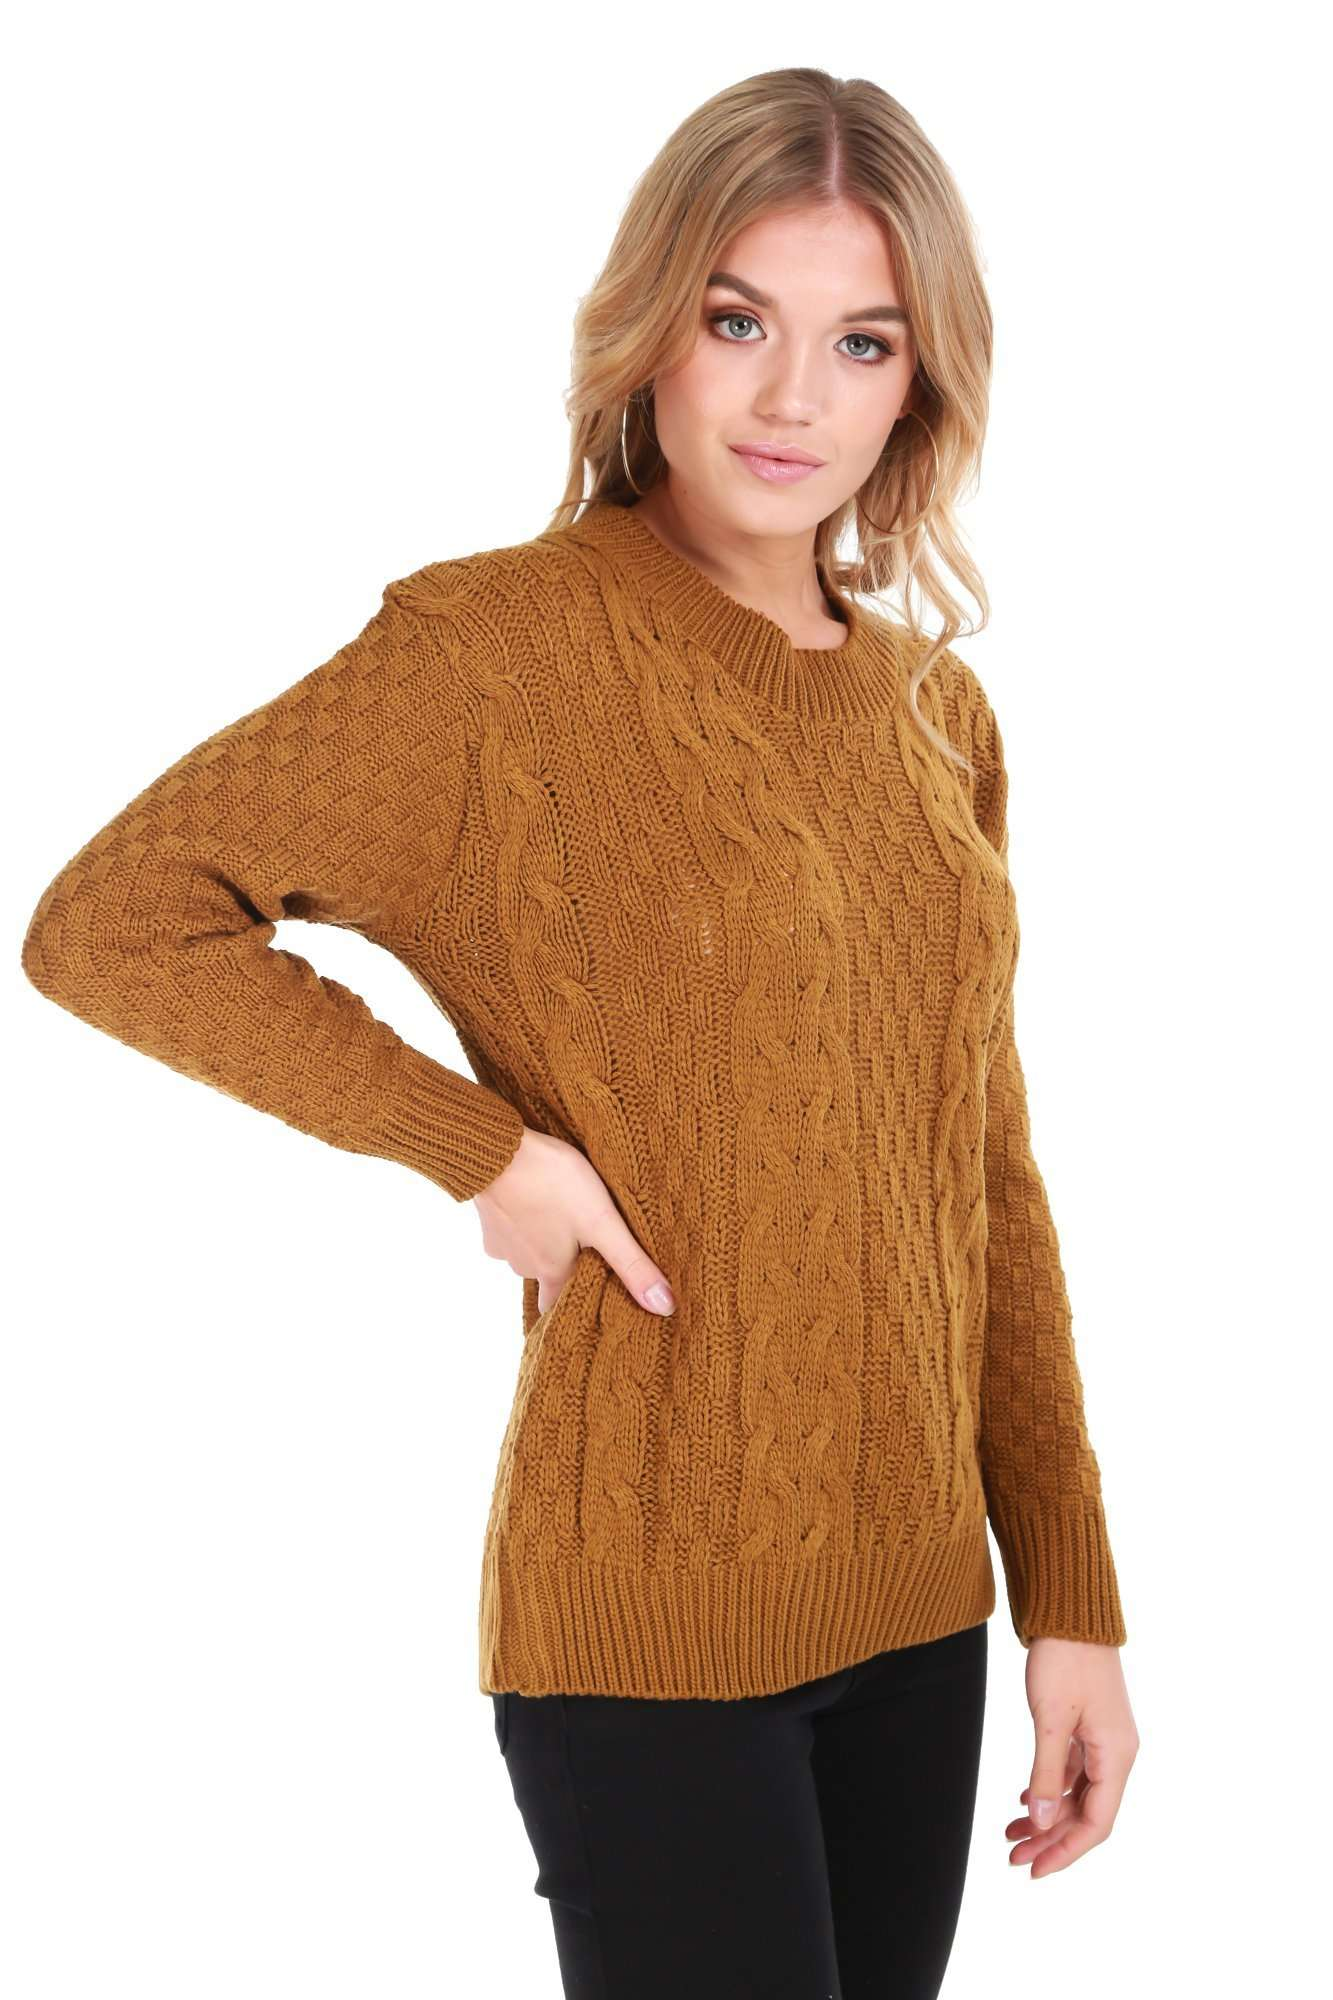 cf6a4bc7c14 Women's Long Sleeve Cable Knit Oversized Jumper | Knit Wear